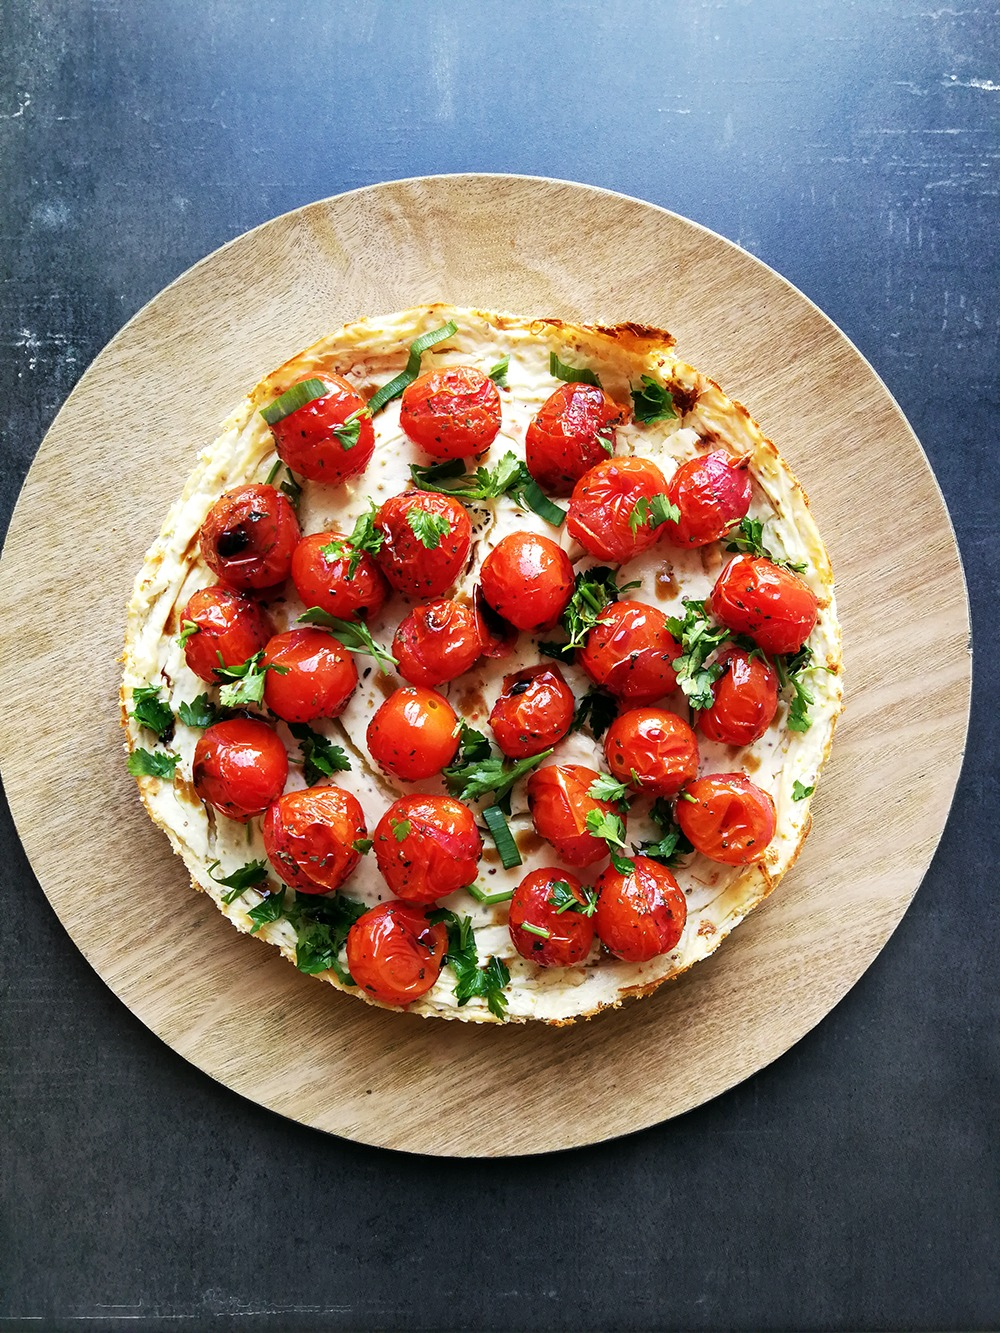 Savoury cheesecake with chilli, tomato, and basil